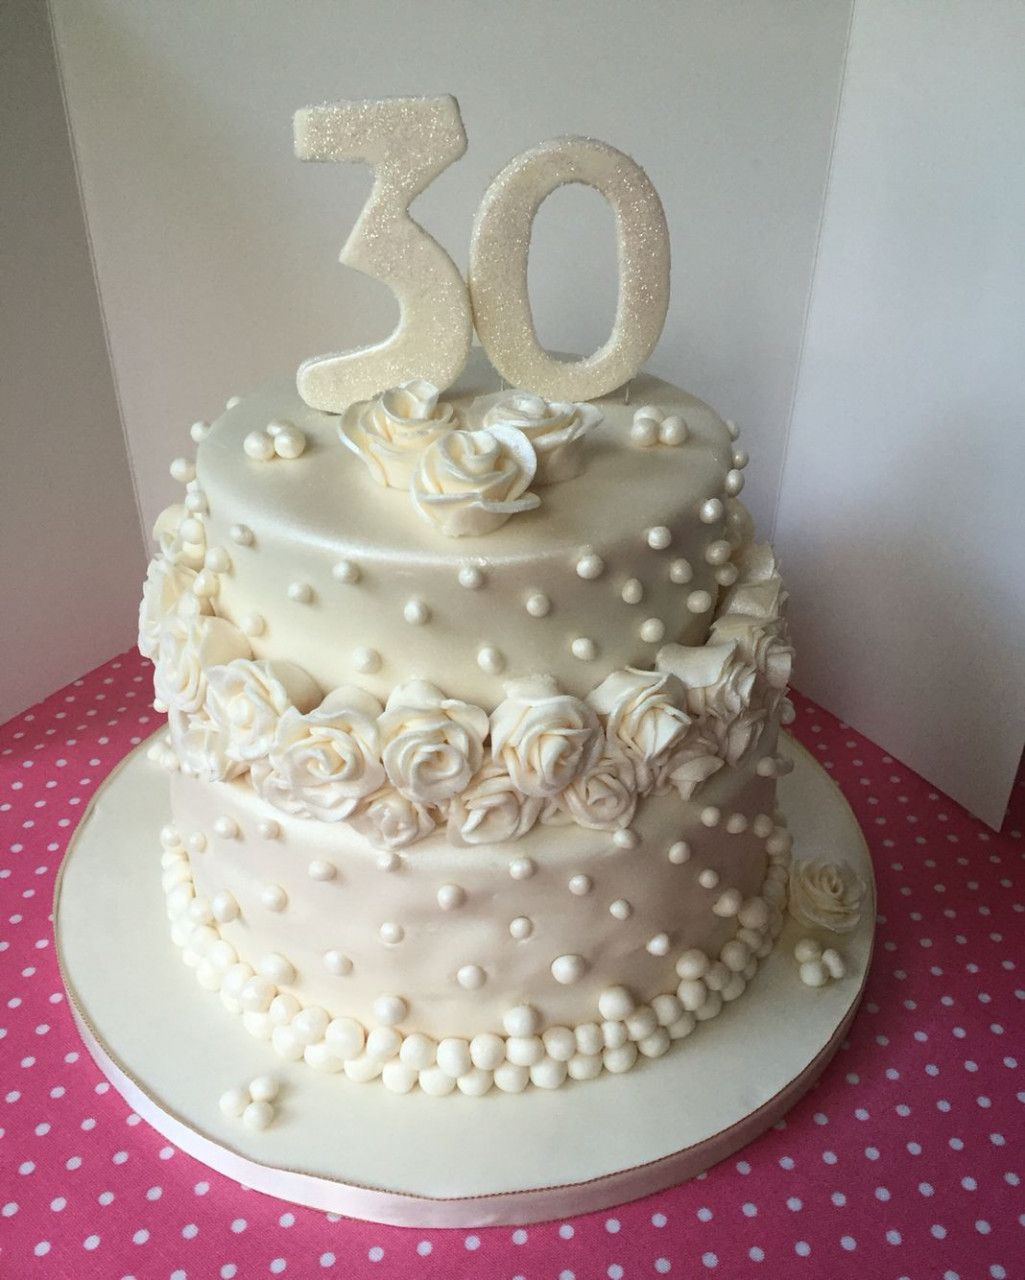 Seven Great Pearl Wedding Anniversary Cake Ideas That You